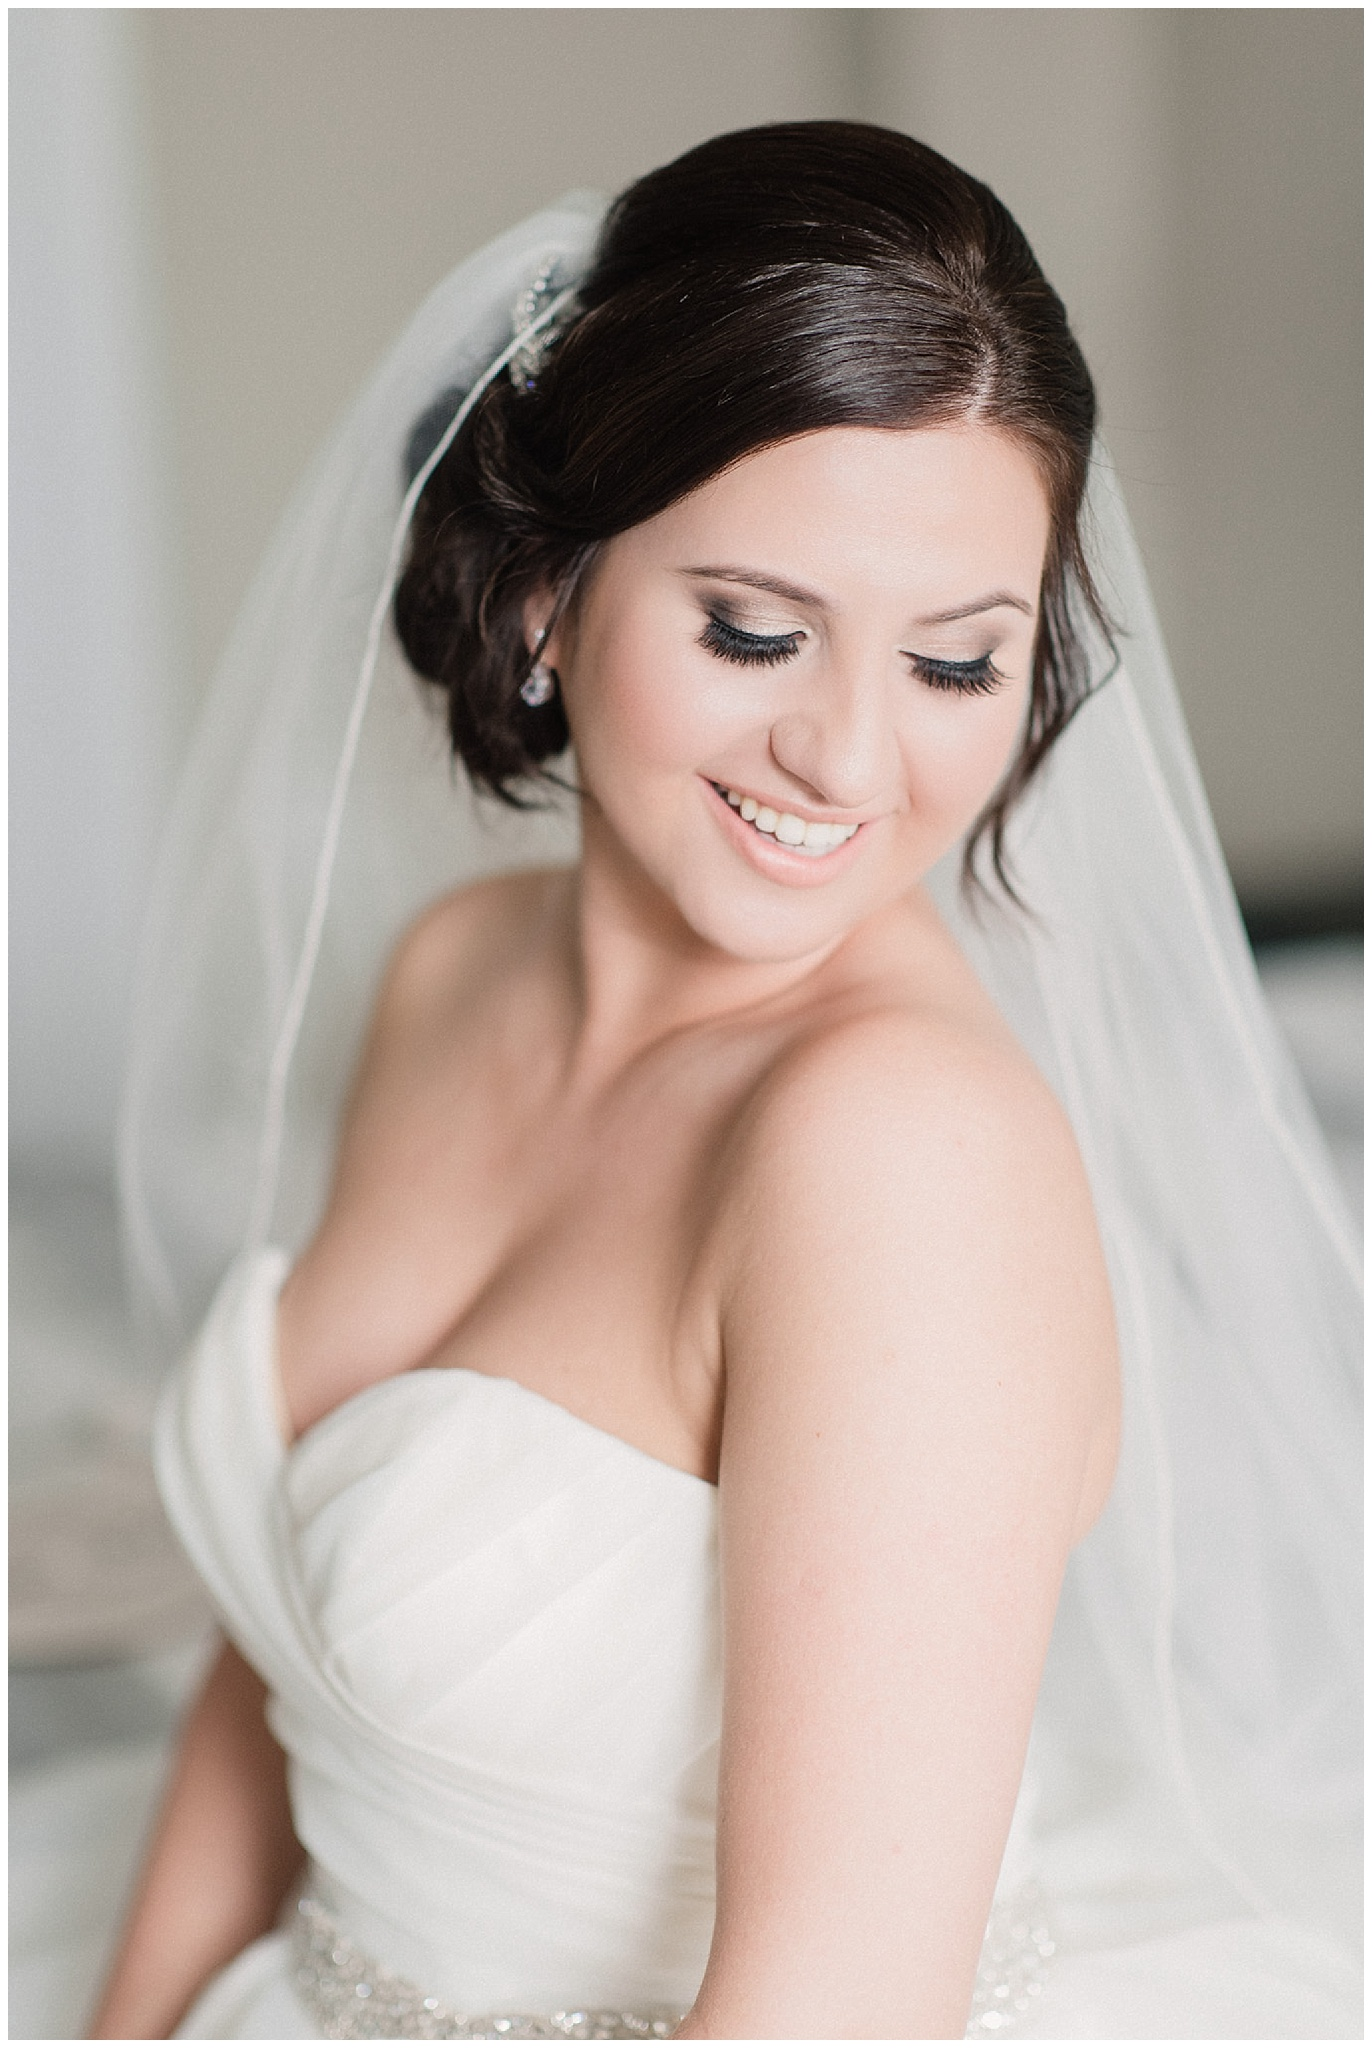 Glam bridal makeup for a soft and romantic pink and grey wedding at LaSalle Banquet Centre by Jenn Kavanagh Photography